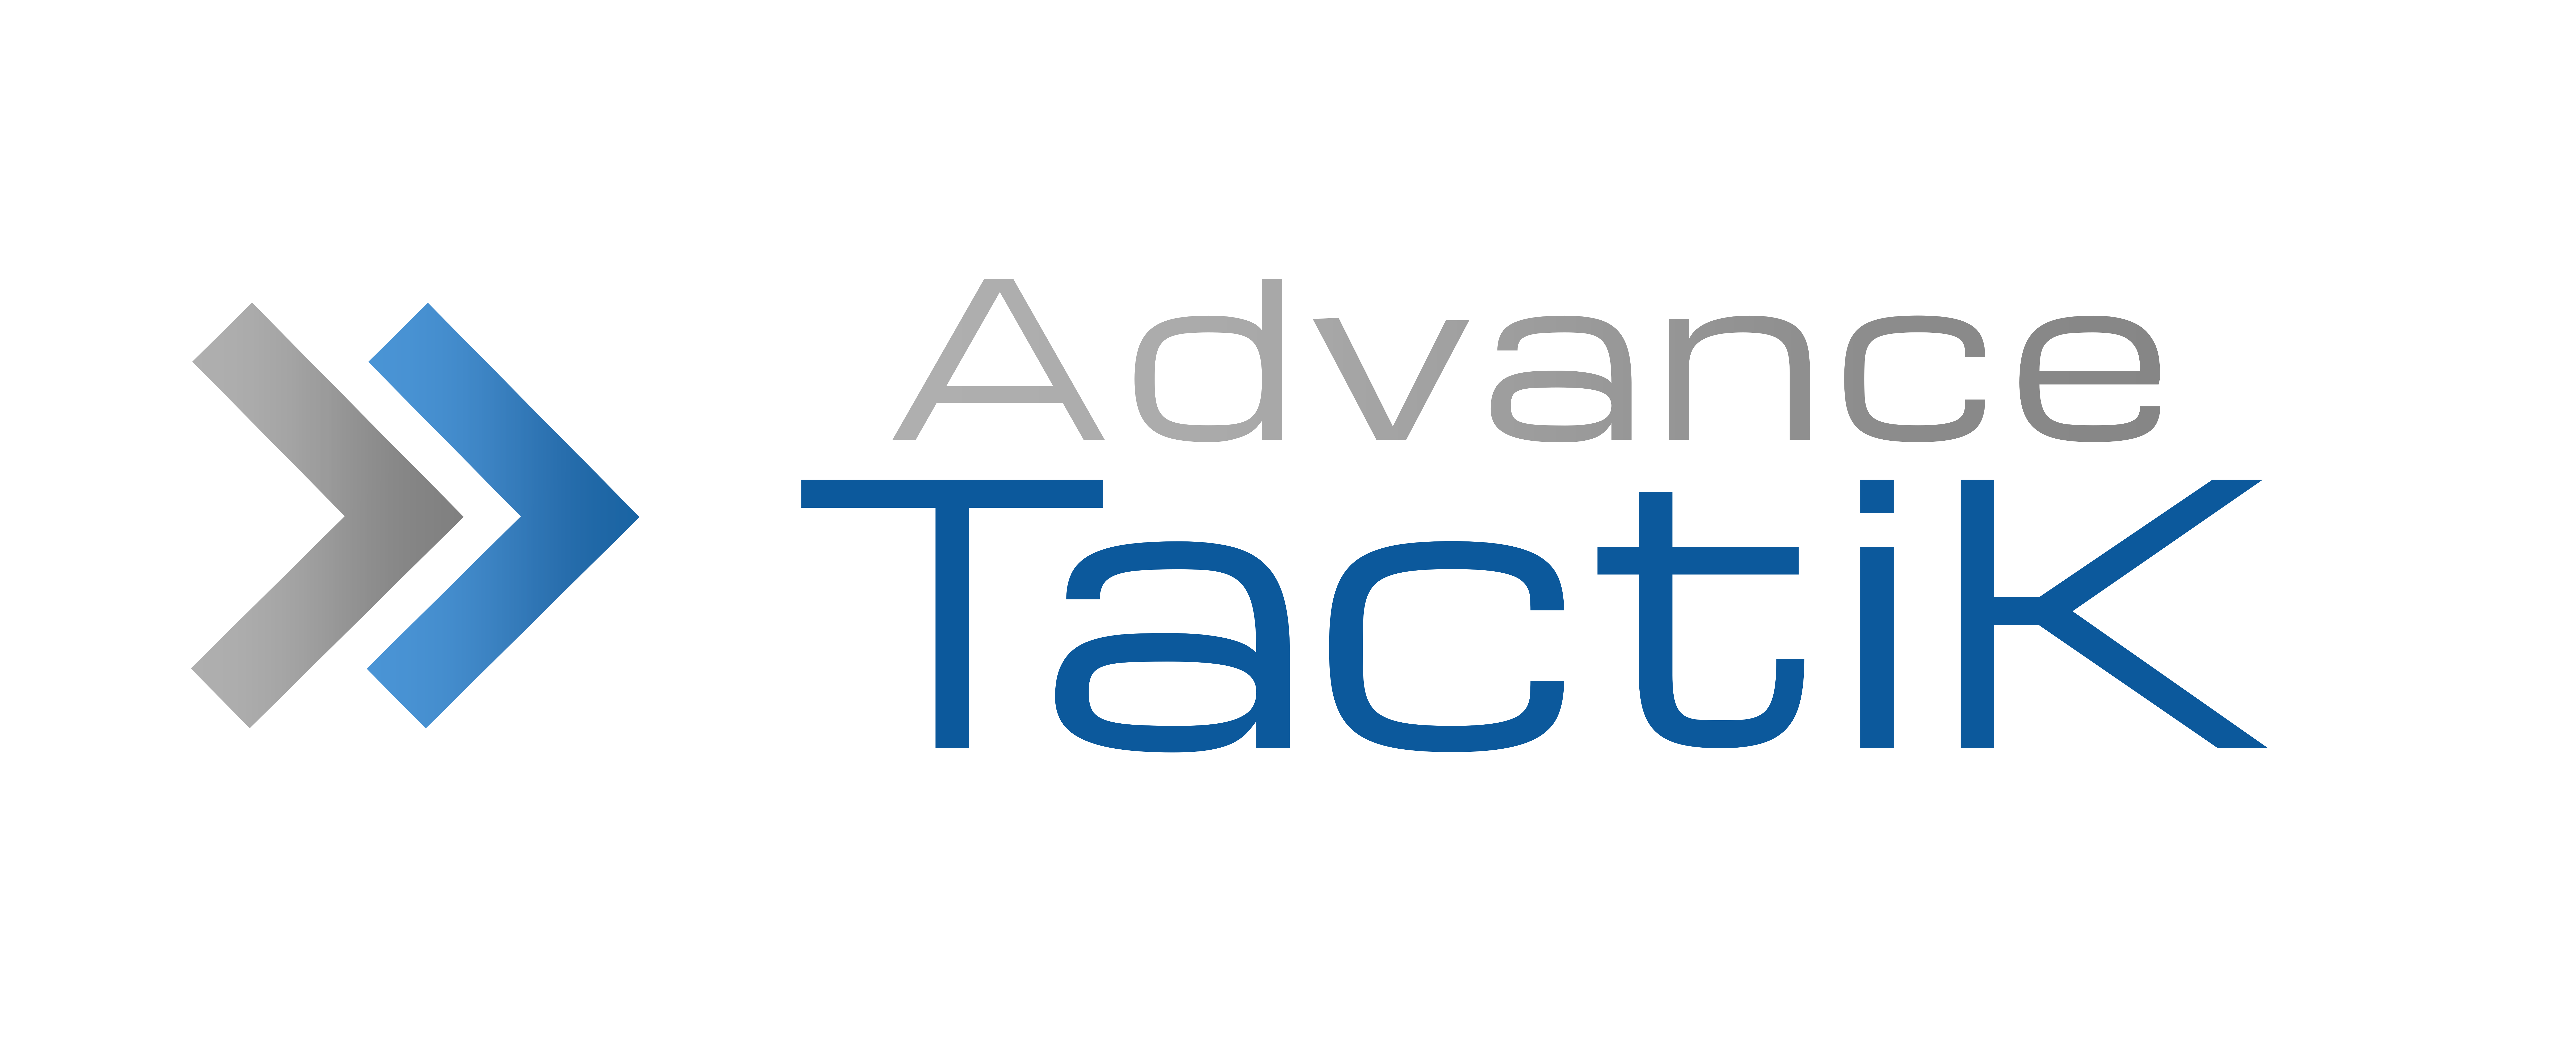 ADVANCE TACTIK